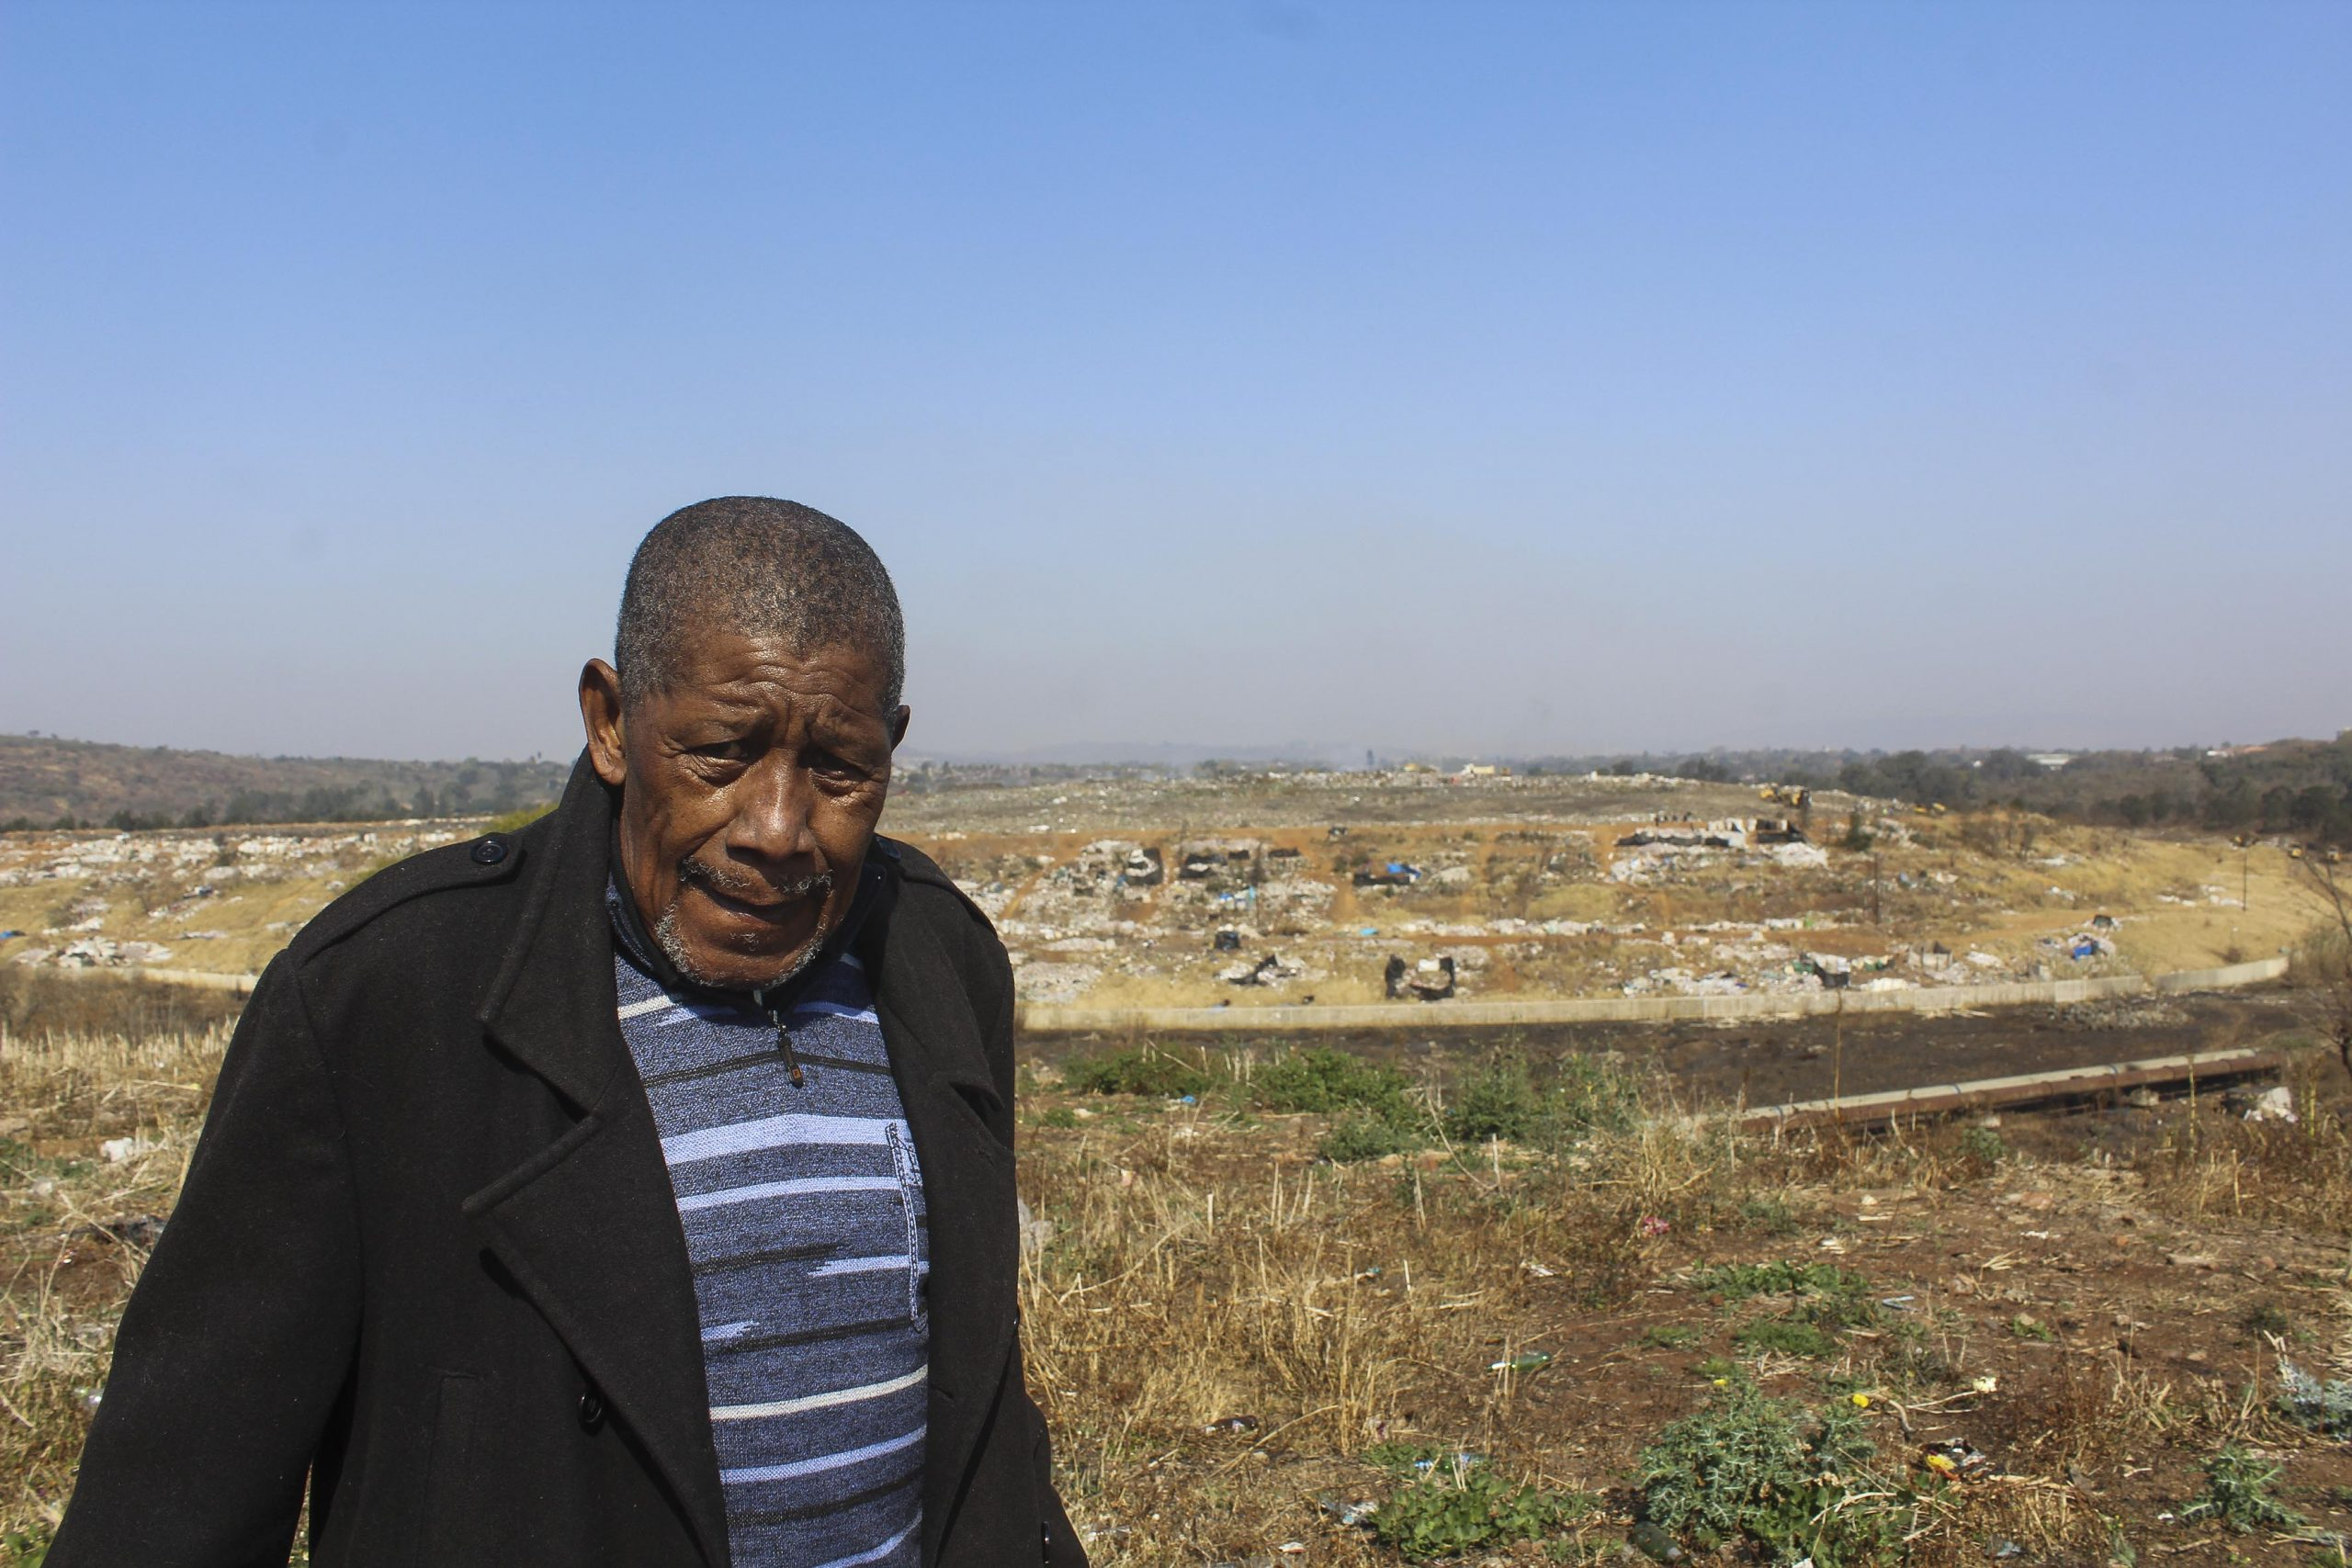 28 July 2020: Siphiwe Zondi, 71, pauses for breath while walking past the New England Road waste site. At least three elderly people died in their sleep in Sobantu at the end of July, when clouds of smoke from a fire at the dump blanketed the village. (Photograph by Tony Carnie)